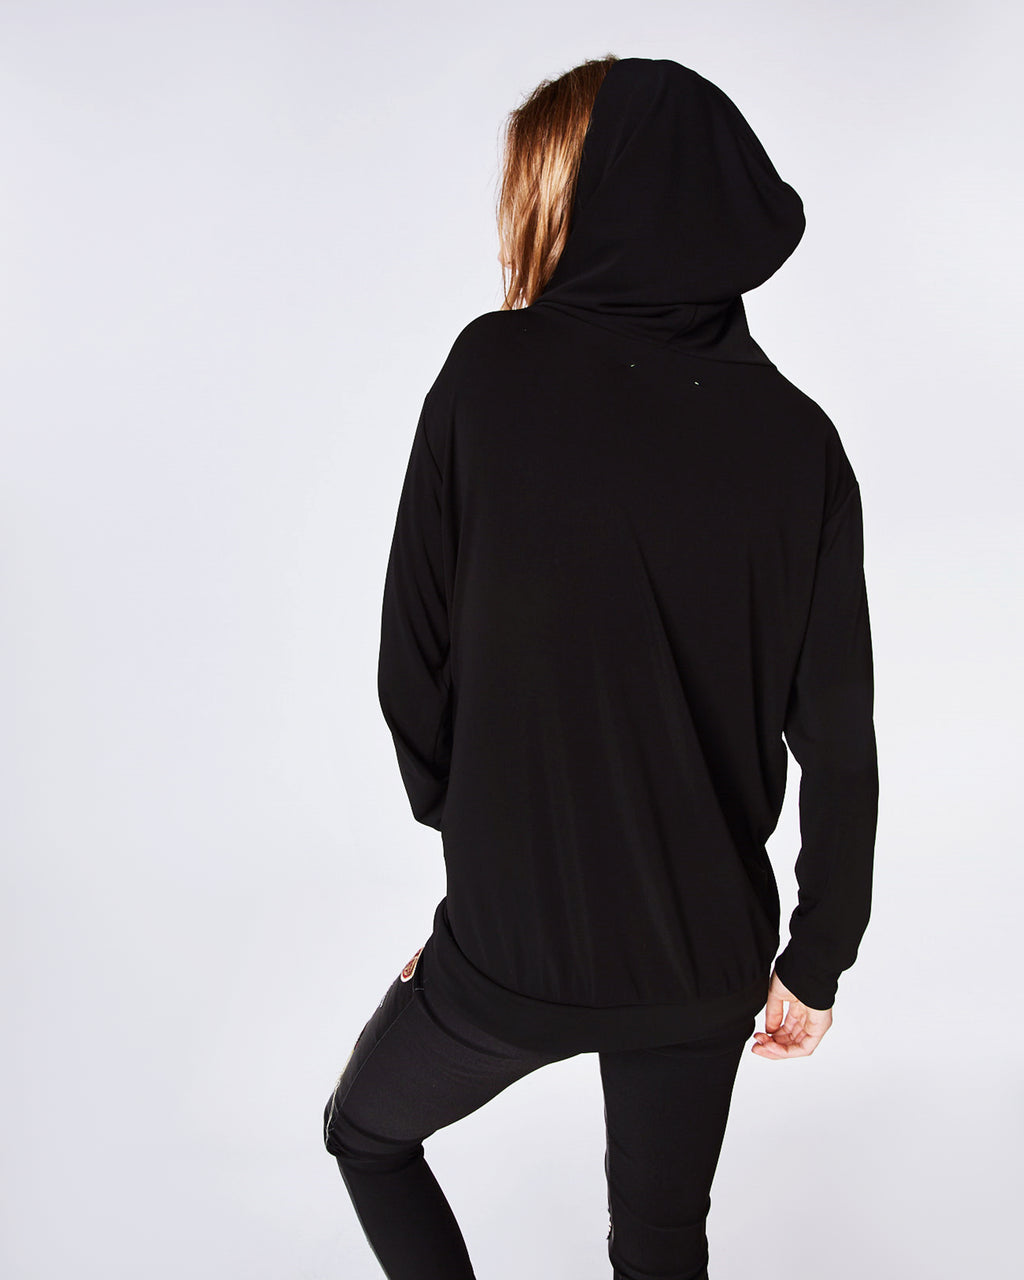 AR10064 - STRETCHY MATTE JERSEY HOODIE - tops - shirts - In a stretchy jersey, this black hoodie is a closet stable. Pair with jeans or joggers on more casual days or coffee runs. Finished with a kangaroo pocket and unlined.